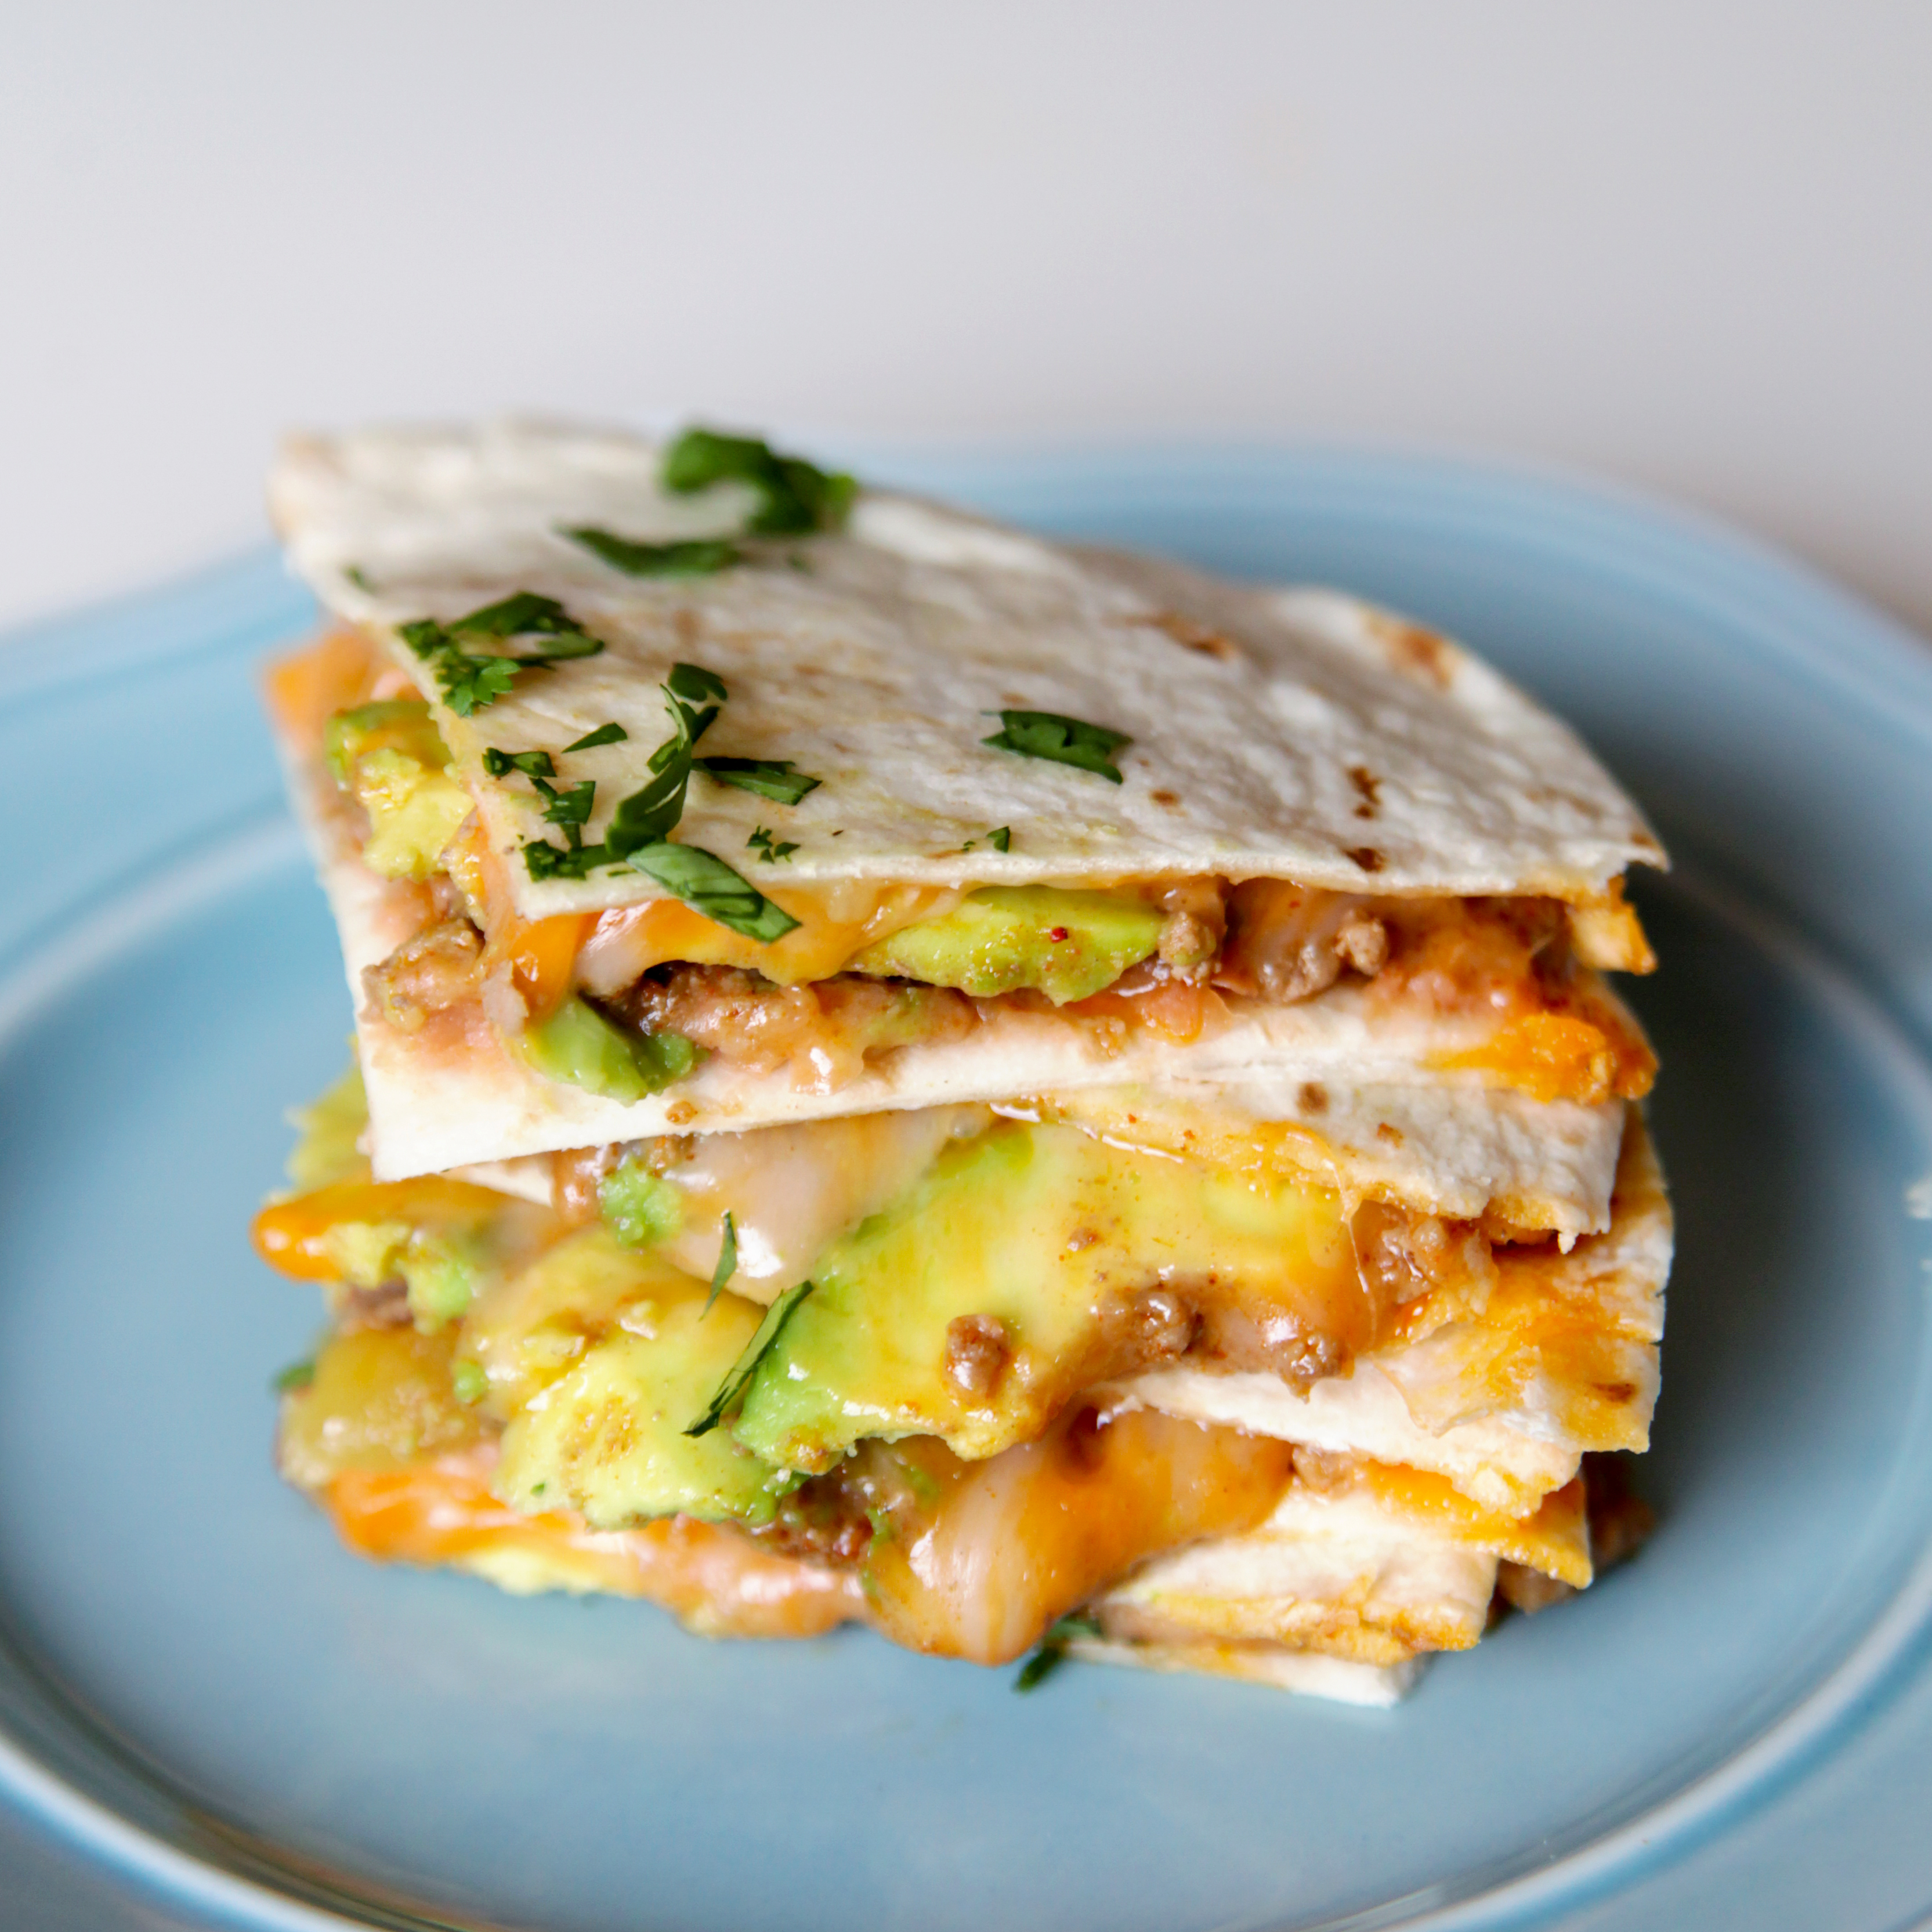 Cheesy Beef Quesadillas with Avocado (featured)